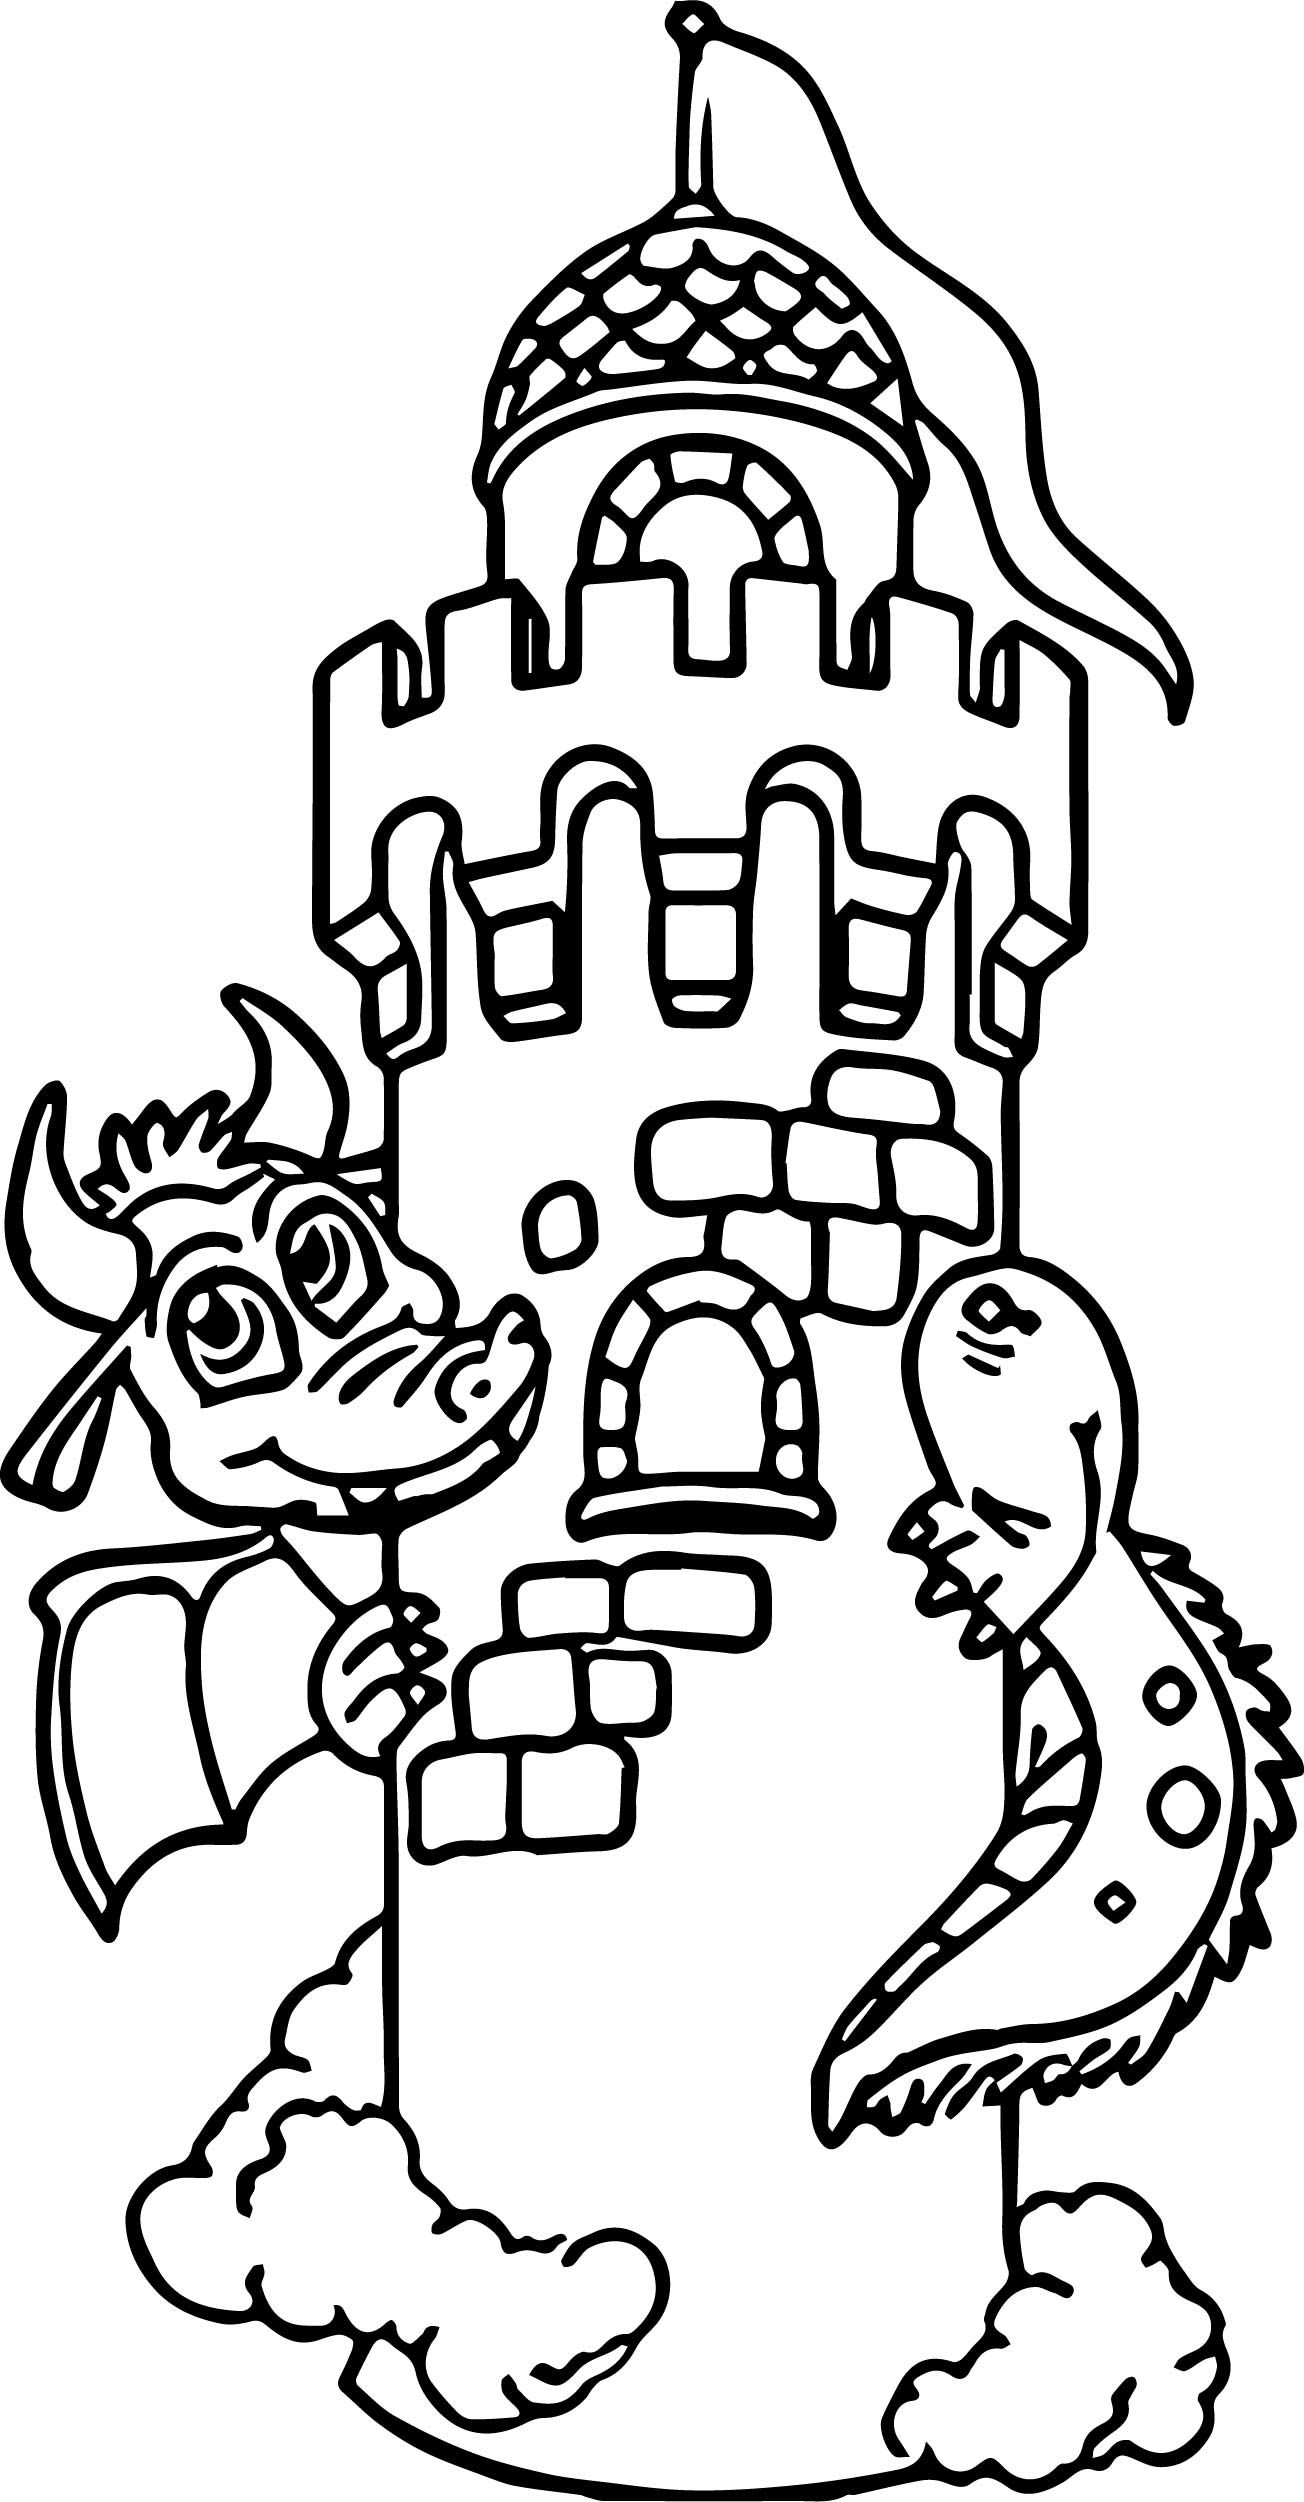 Nice Dragon Around Castle Coloring Page Castle Coloring Page Easter Coloring Pages Mermaid Coloring Pages